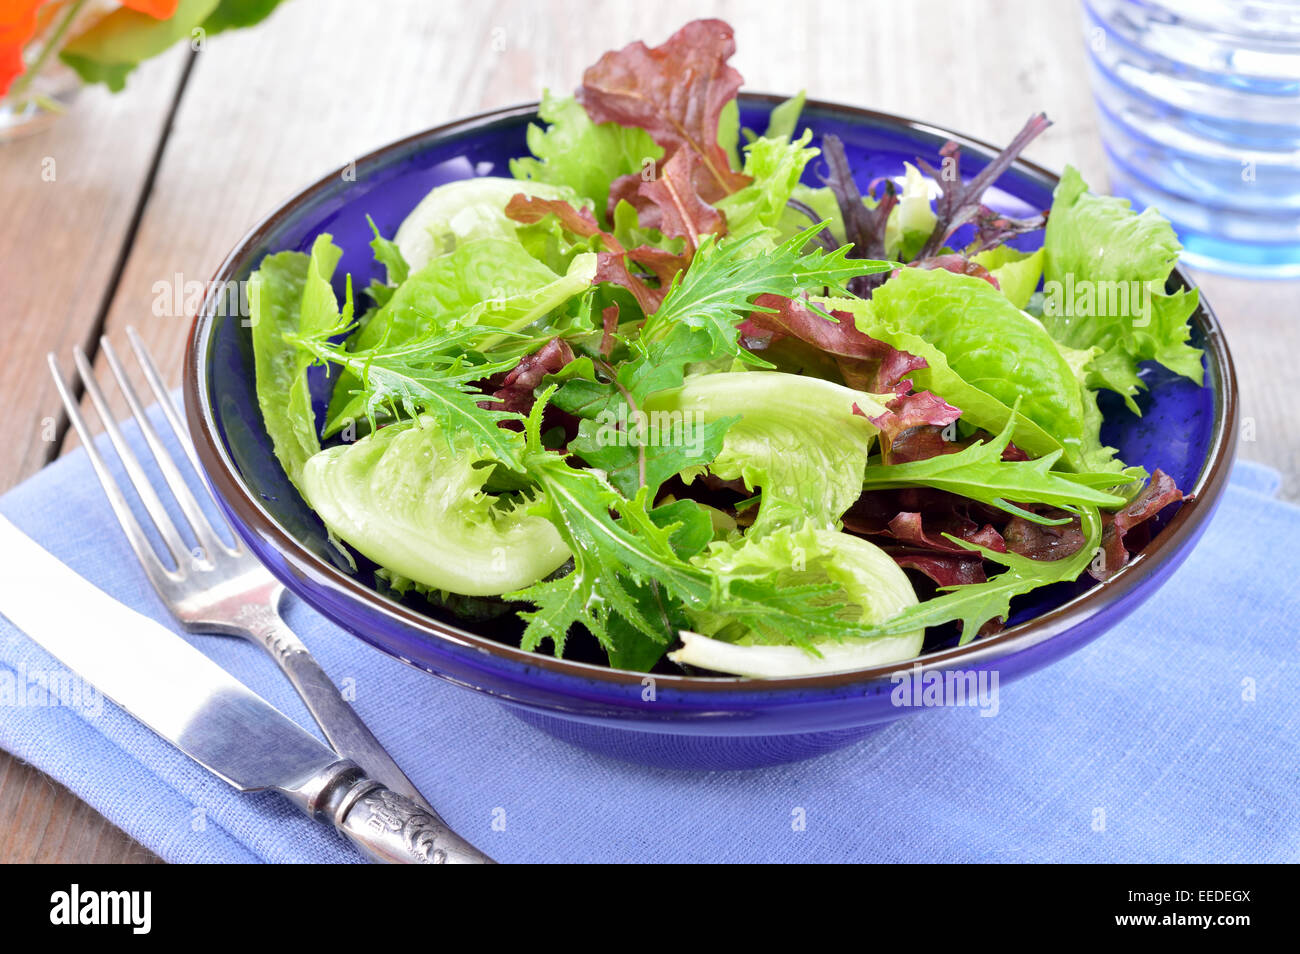 Fresh light mixed green leaves salad. Lettuce, mizuna, arugula and oakleave lettuce in blue bowl on a table. Stock Photo